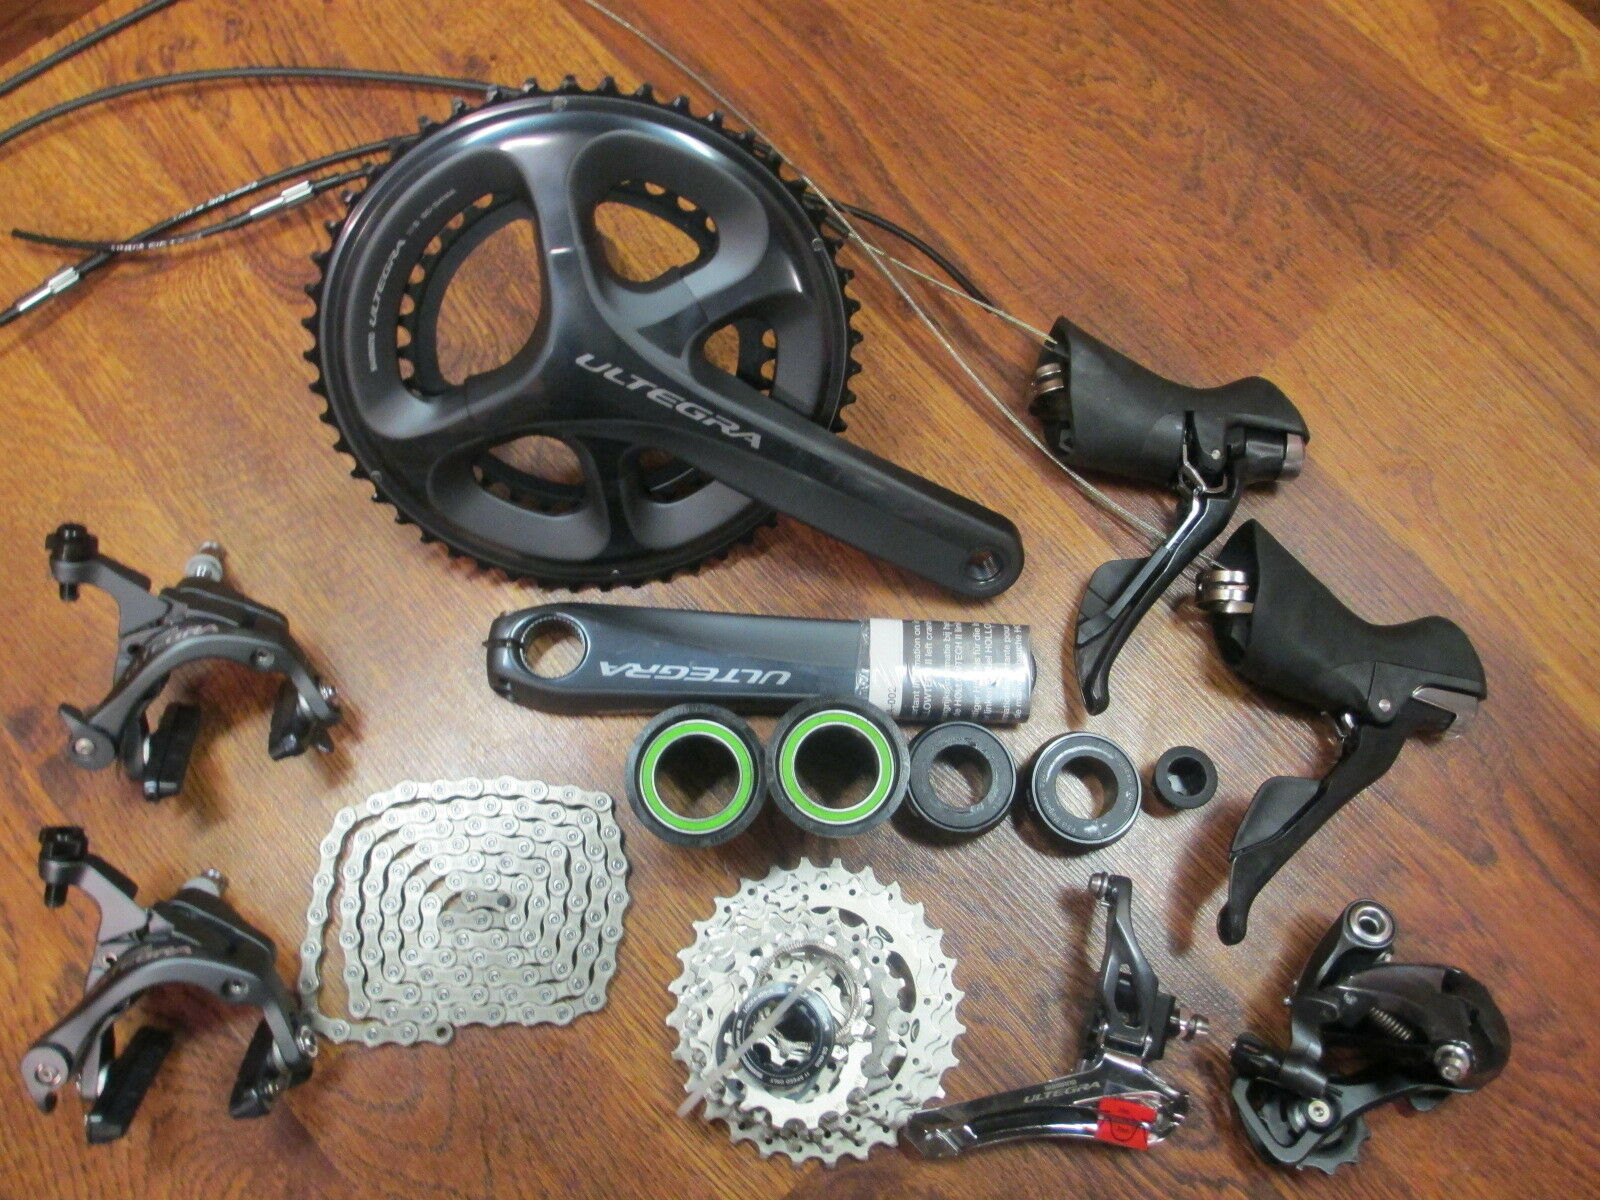 SHIMANO ULTEGRA 6800 172.5 50 34 11-28 GROUP GROUPPO BUILD KIT 11 SPEED DOUBLE